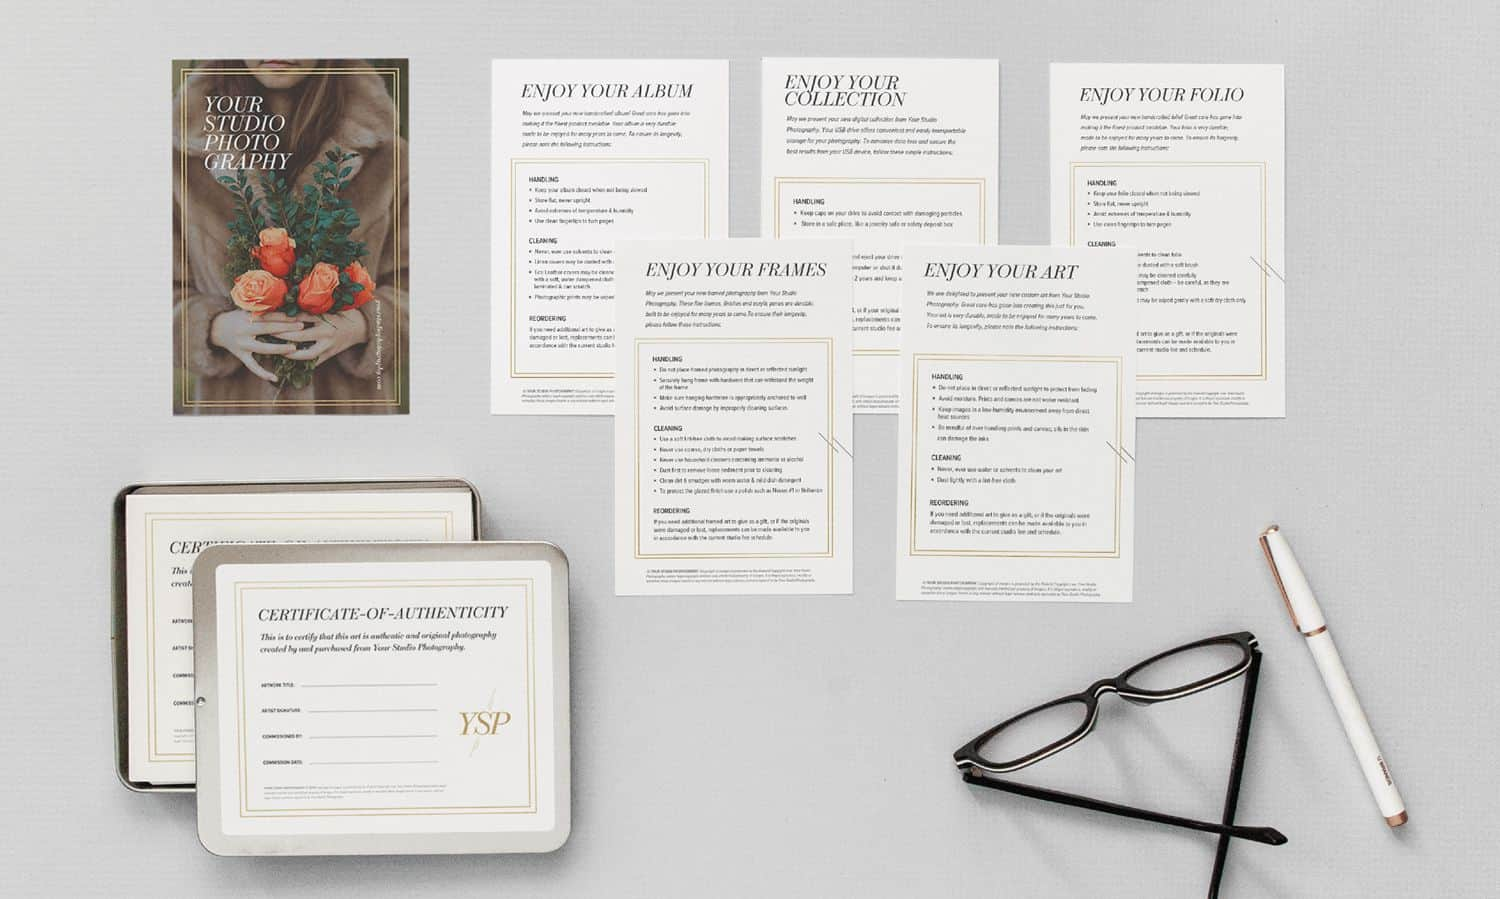 Client care cards by Design Aglow